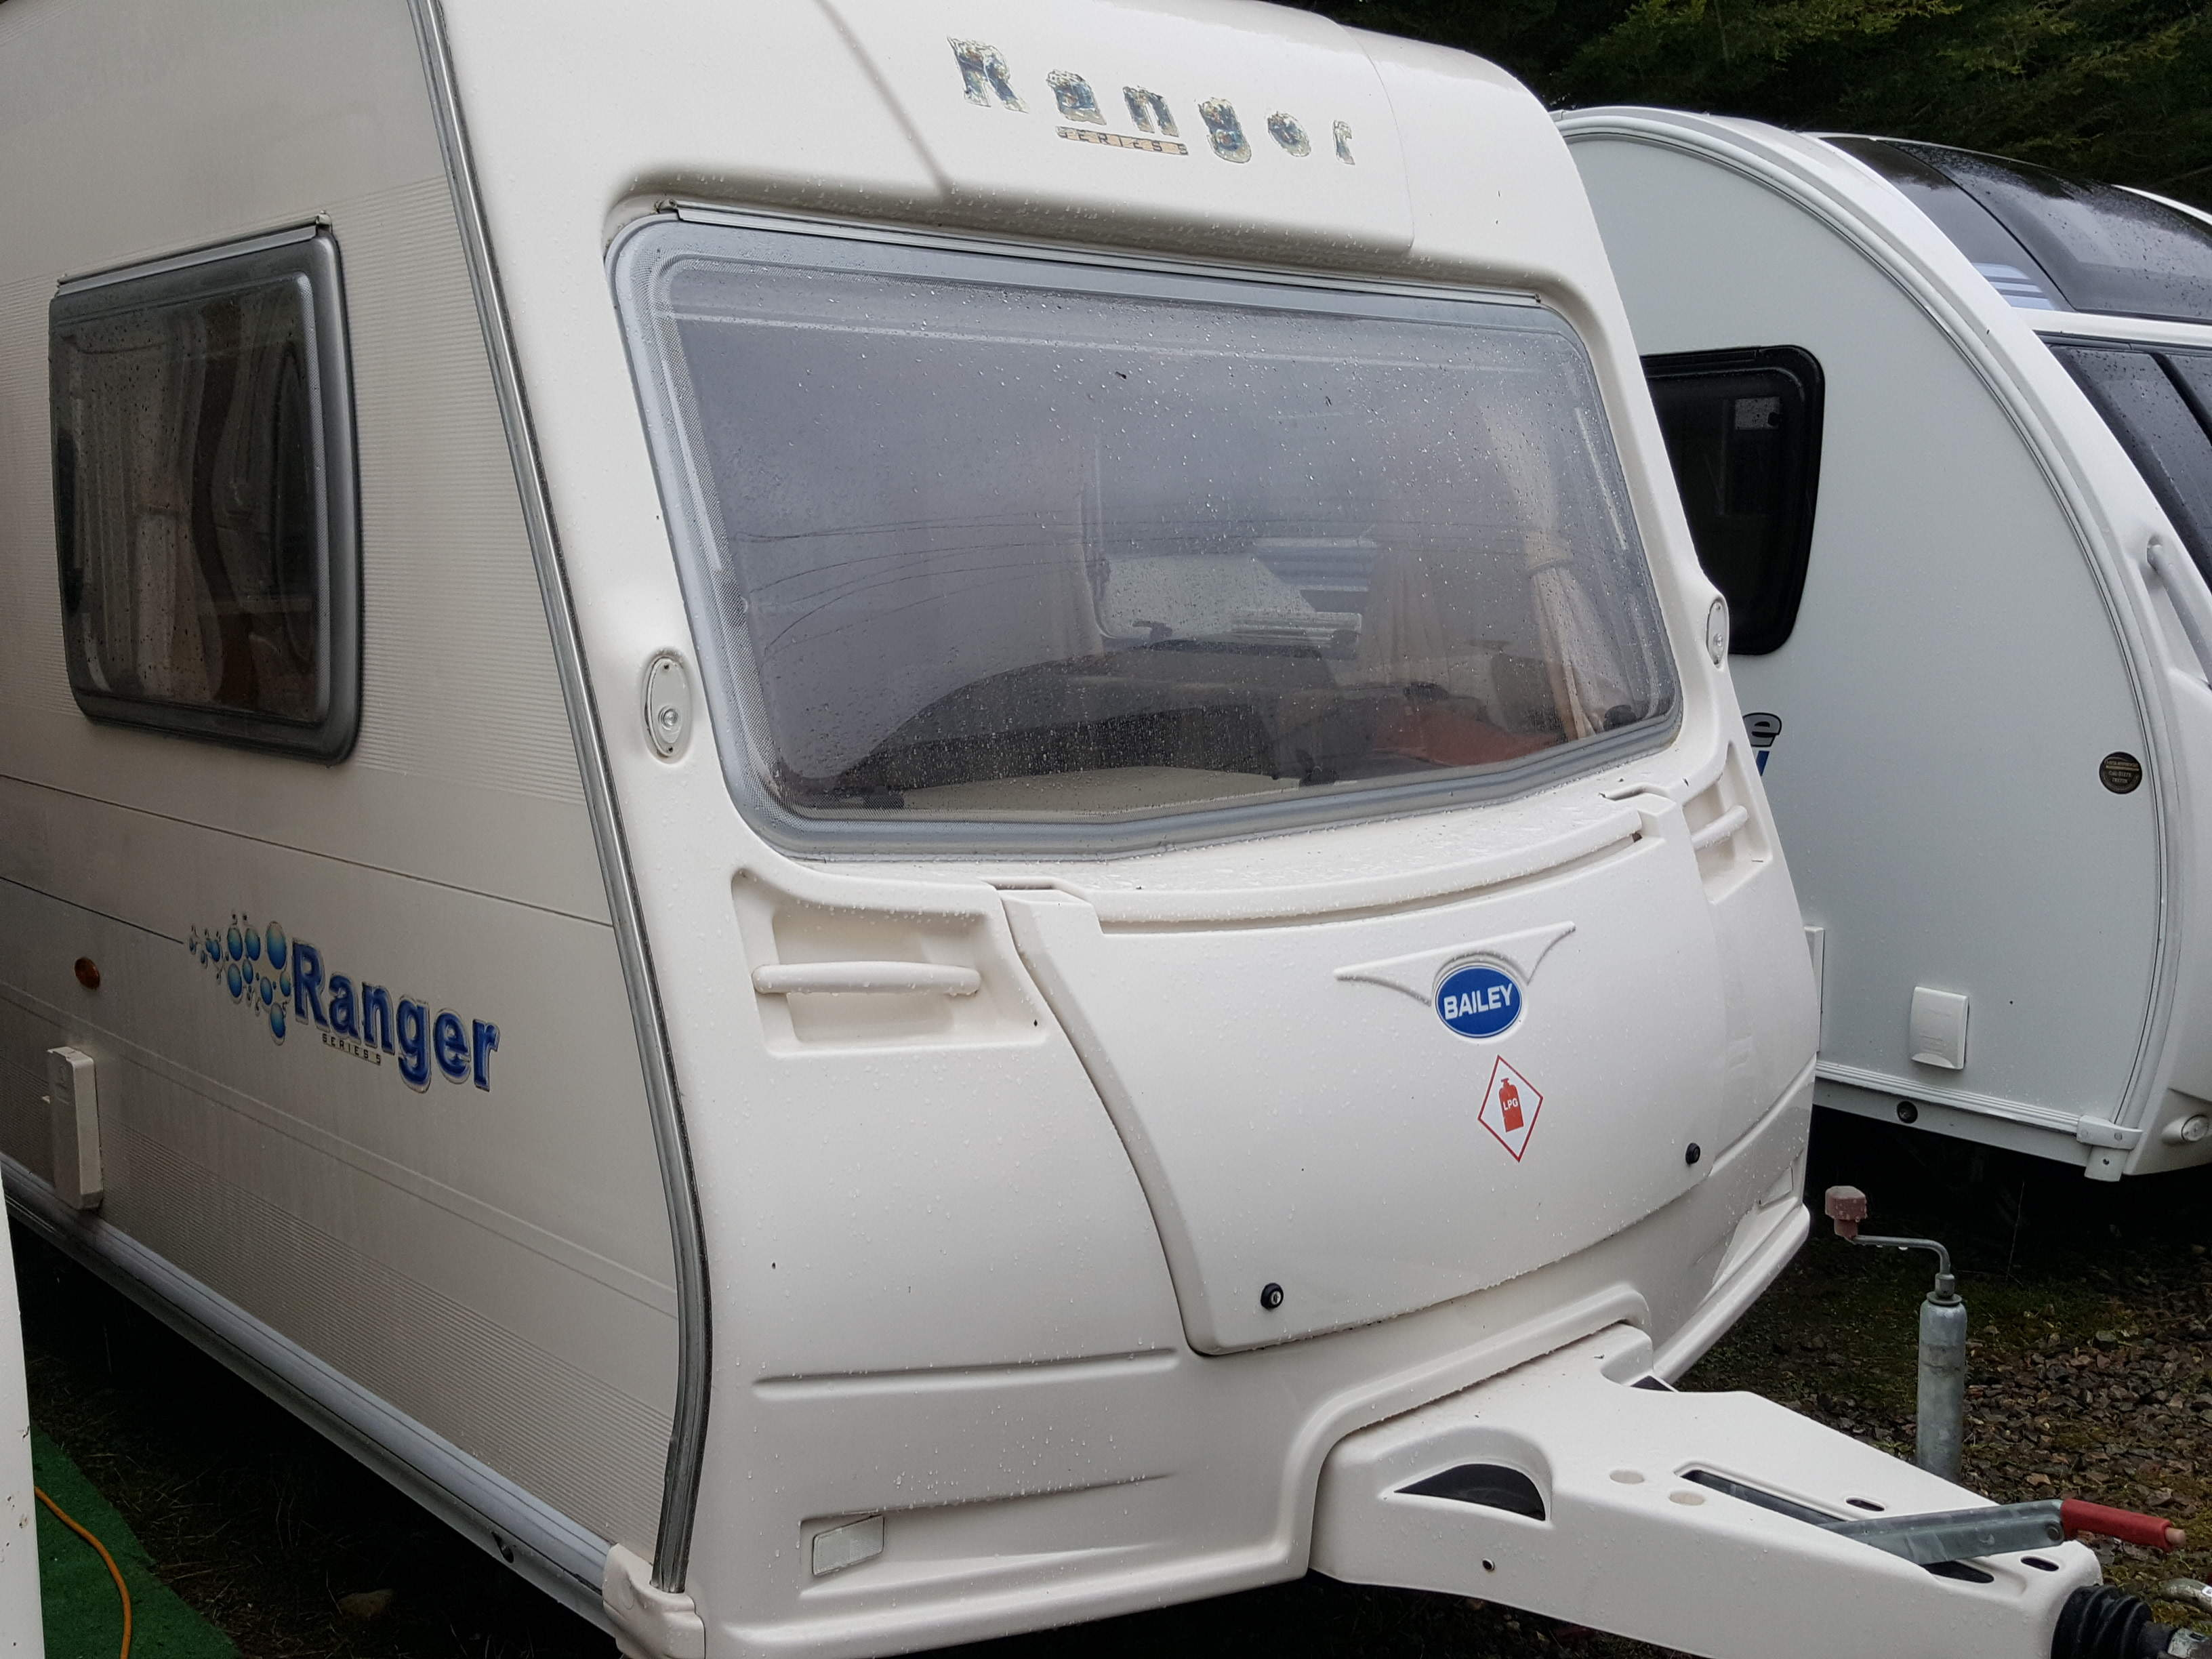 2006 Bailey Ranger 550 6 Berth Side Dinette Fixed End Bunks Caravan with Motor Mover